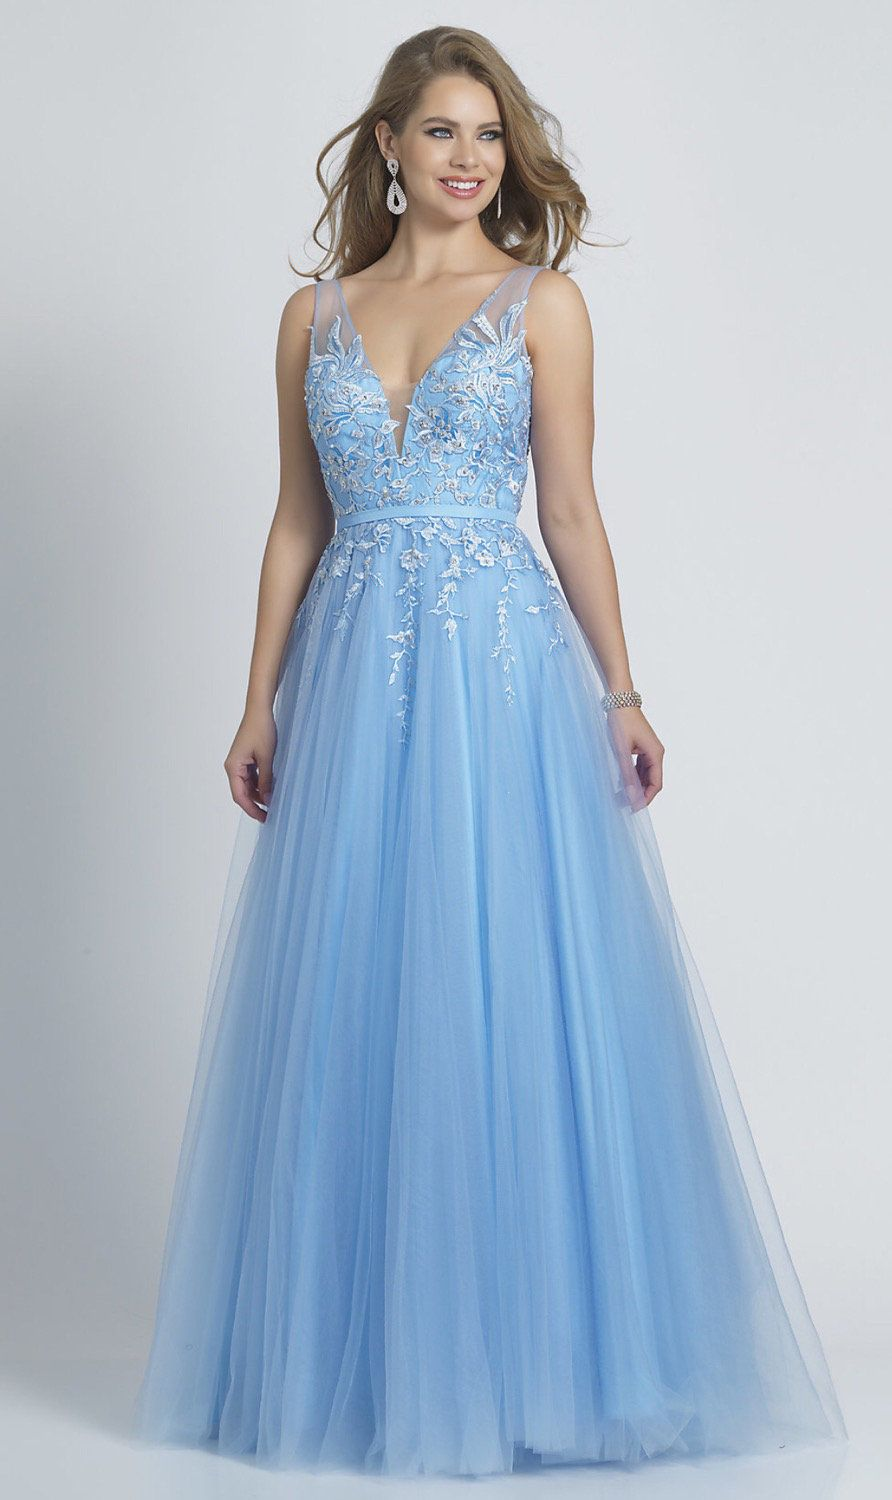 Long Periwinkle Blue Ballgown Style Prom Dress Prom Dresses Blue Prom Dresses Periwinkle Prom Dress [ 1500 x 892 Pixel ]